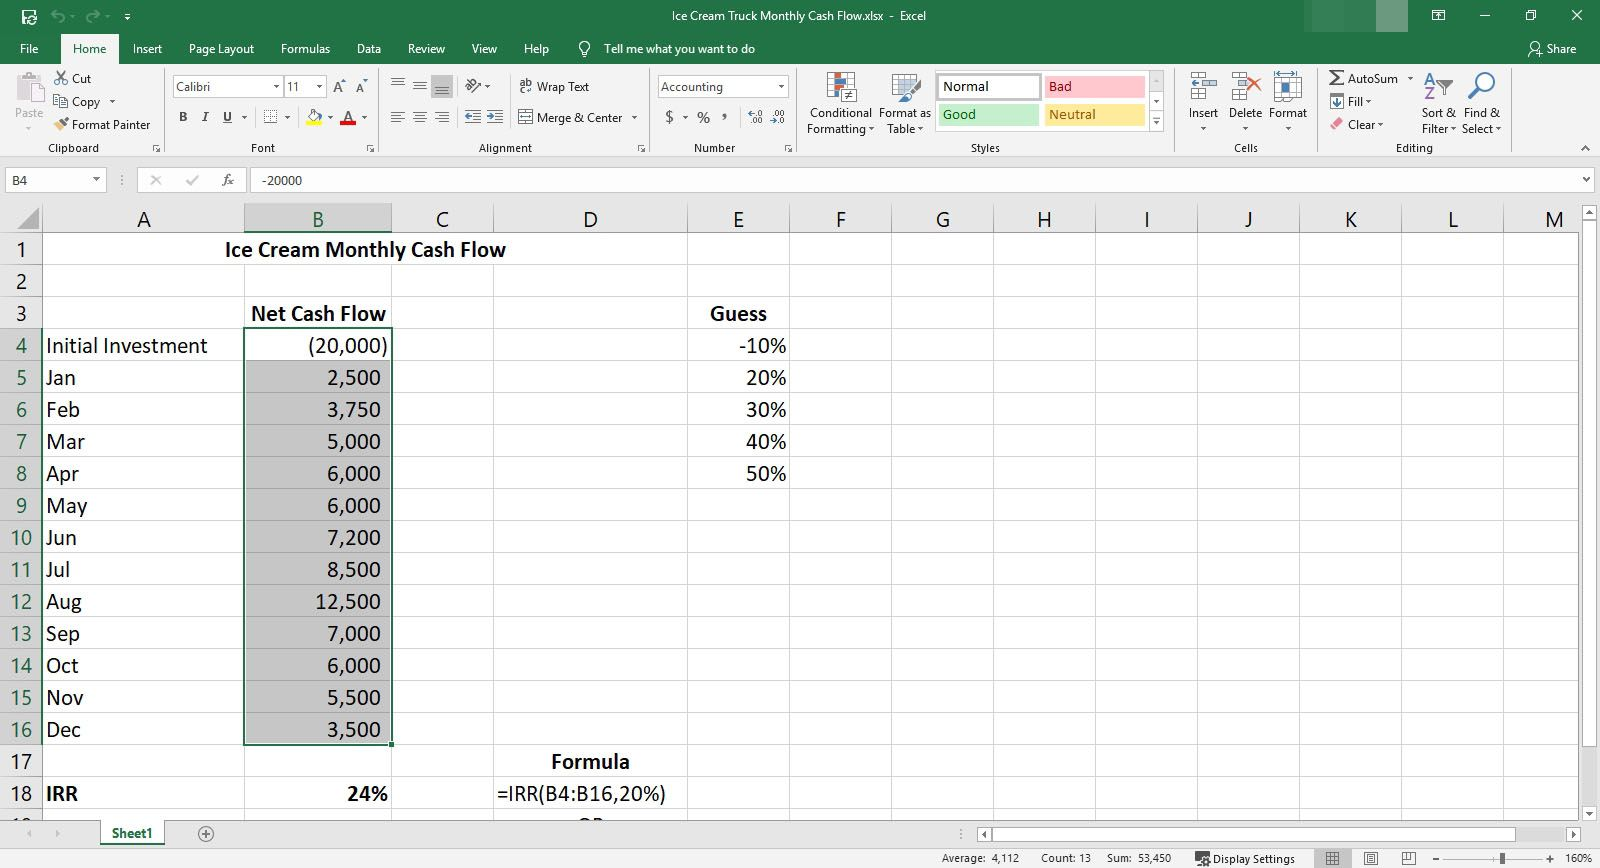 How to Calculate IRR in Excel